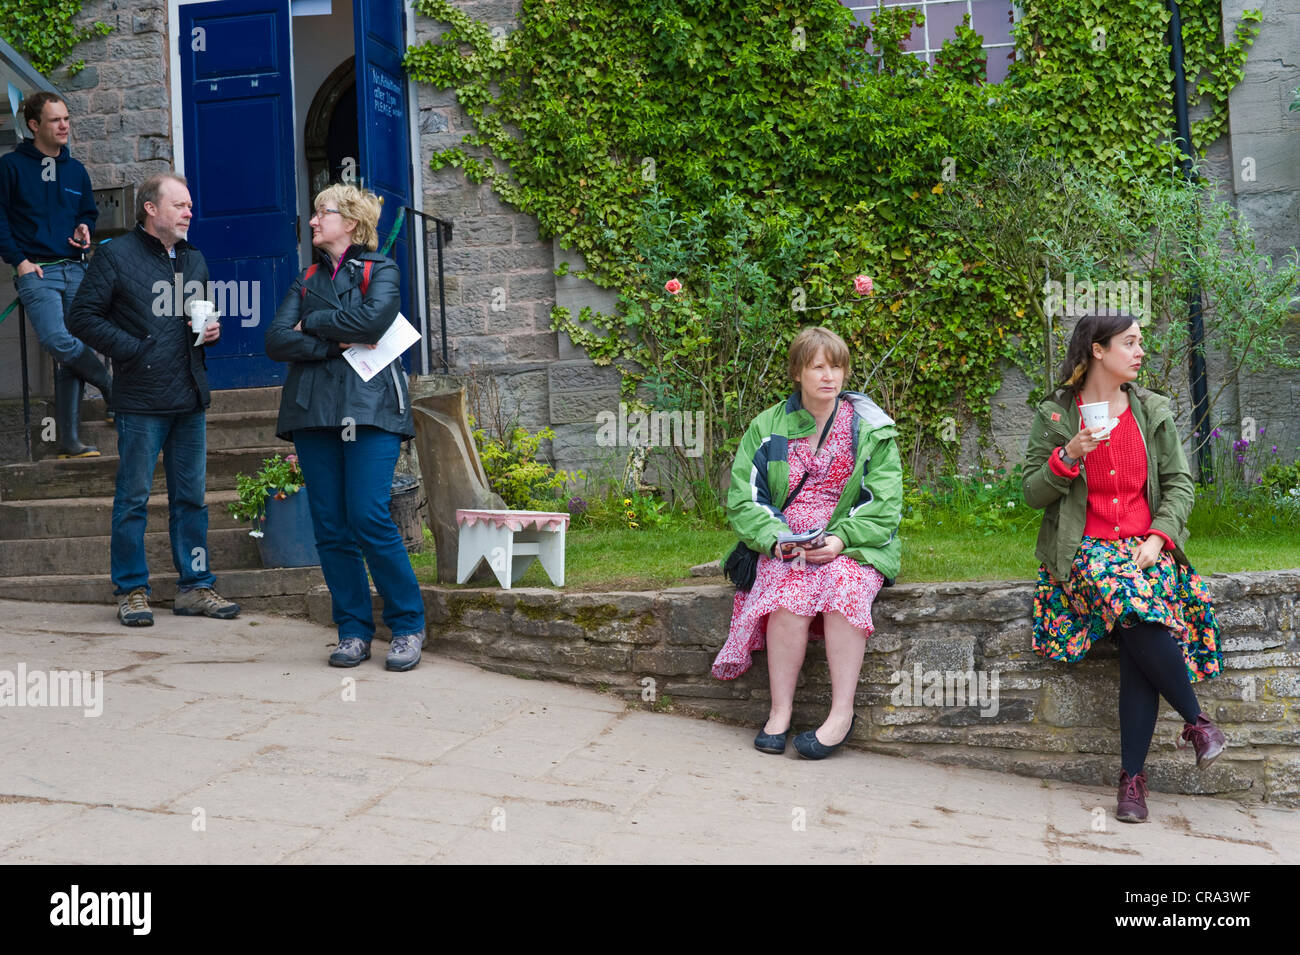 People relaxing outside HowTheLightGetsIn, the philosophy and music festival at Globe at Hay, Hay-on-Wye, Powys, - Stock Image